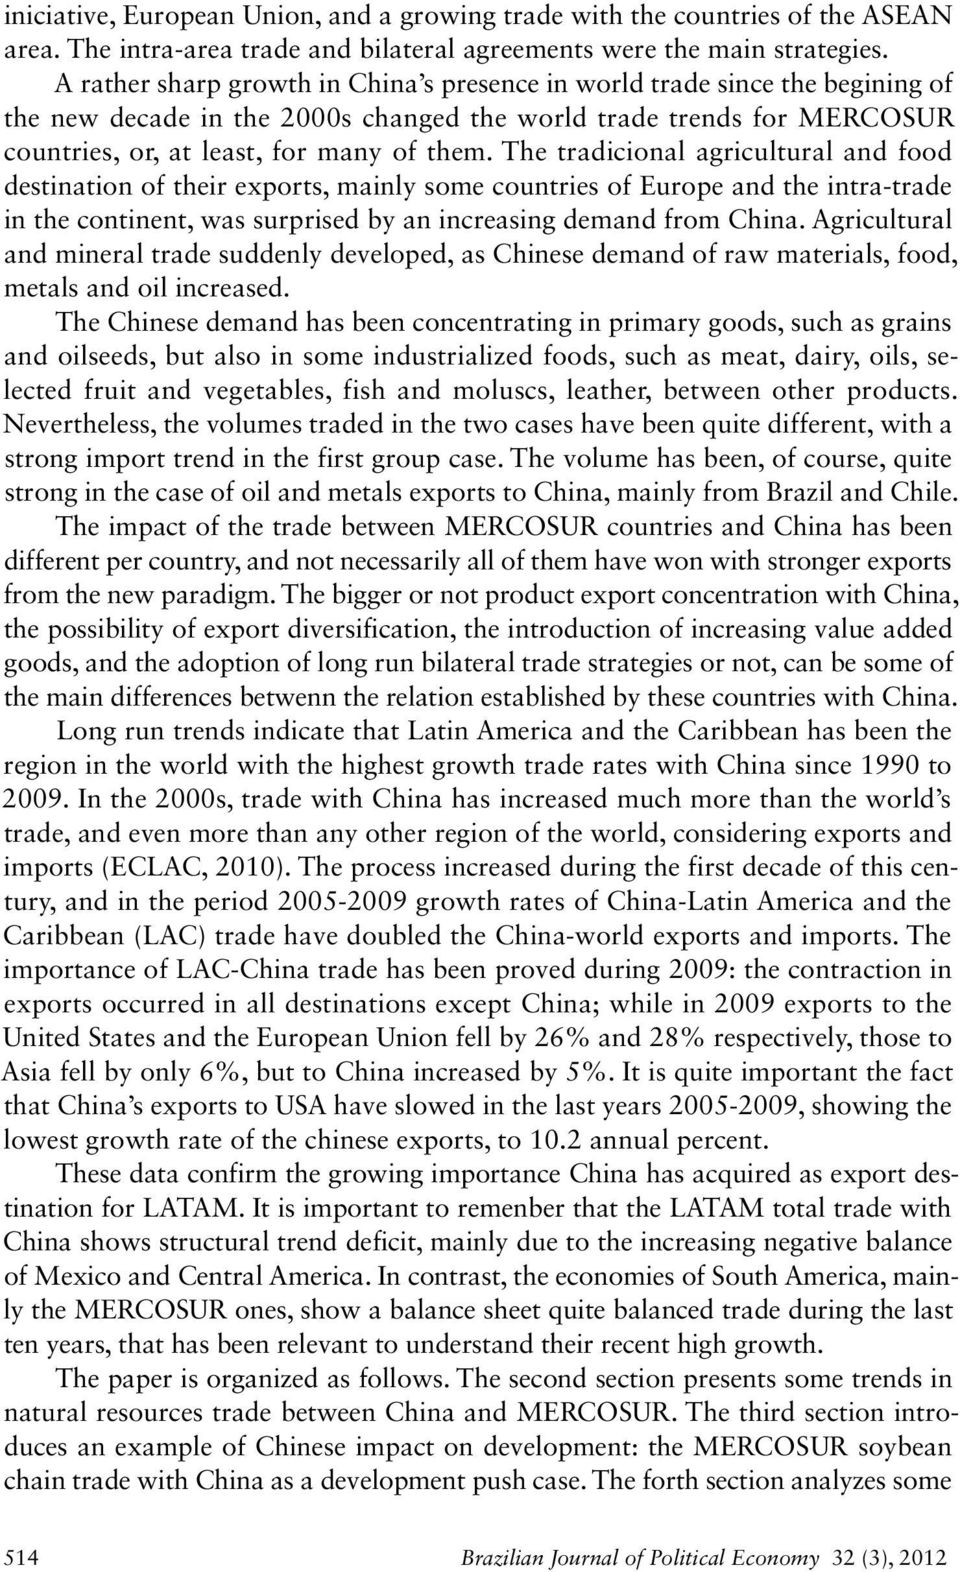 The tradicional agricultural and food destination of their exports, mainly some countries of Europe and the intra-trade in the continent, was surprised by an increasing demand from China.